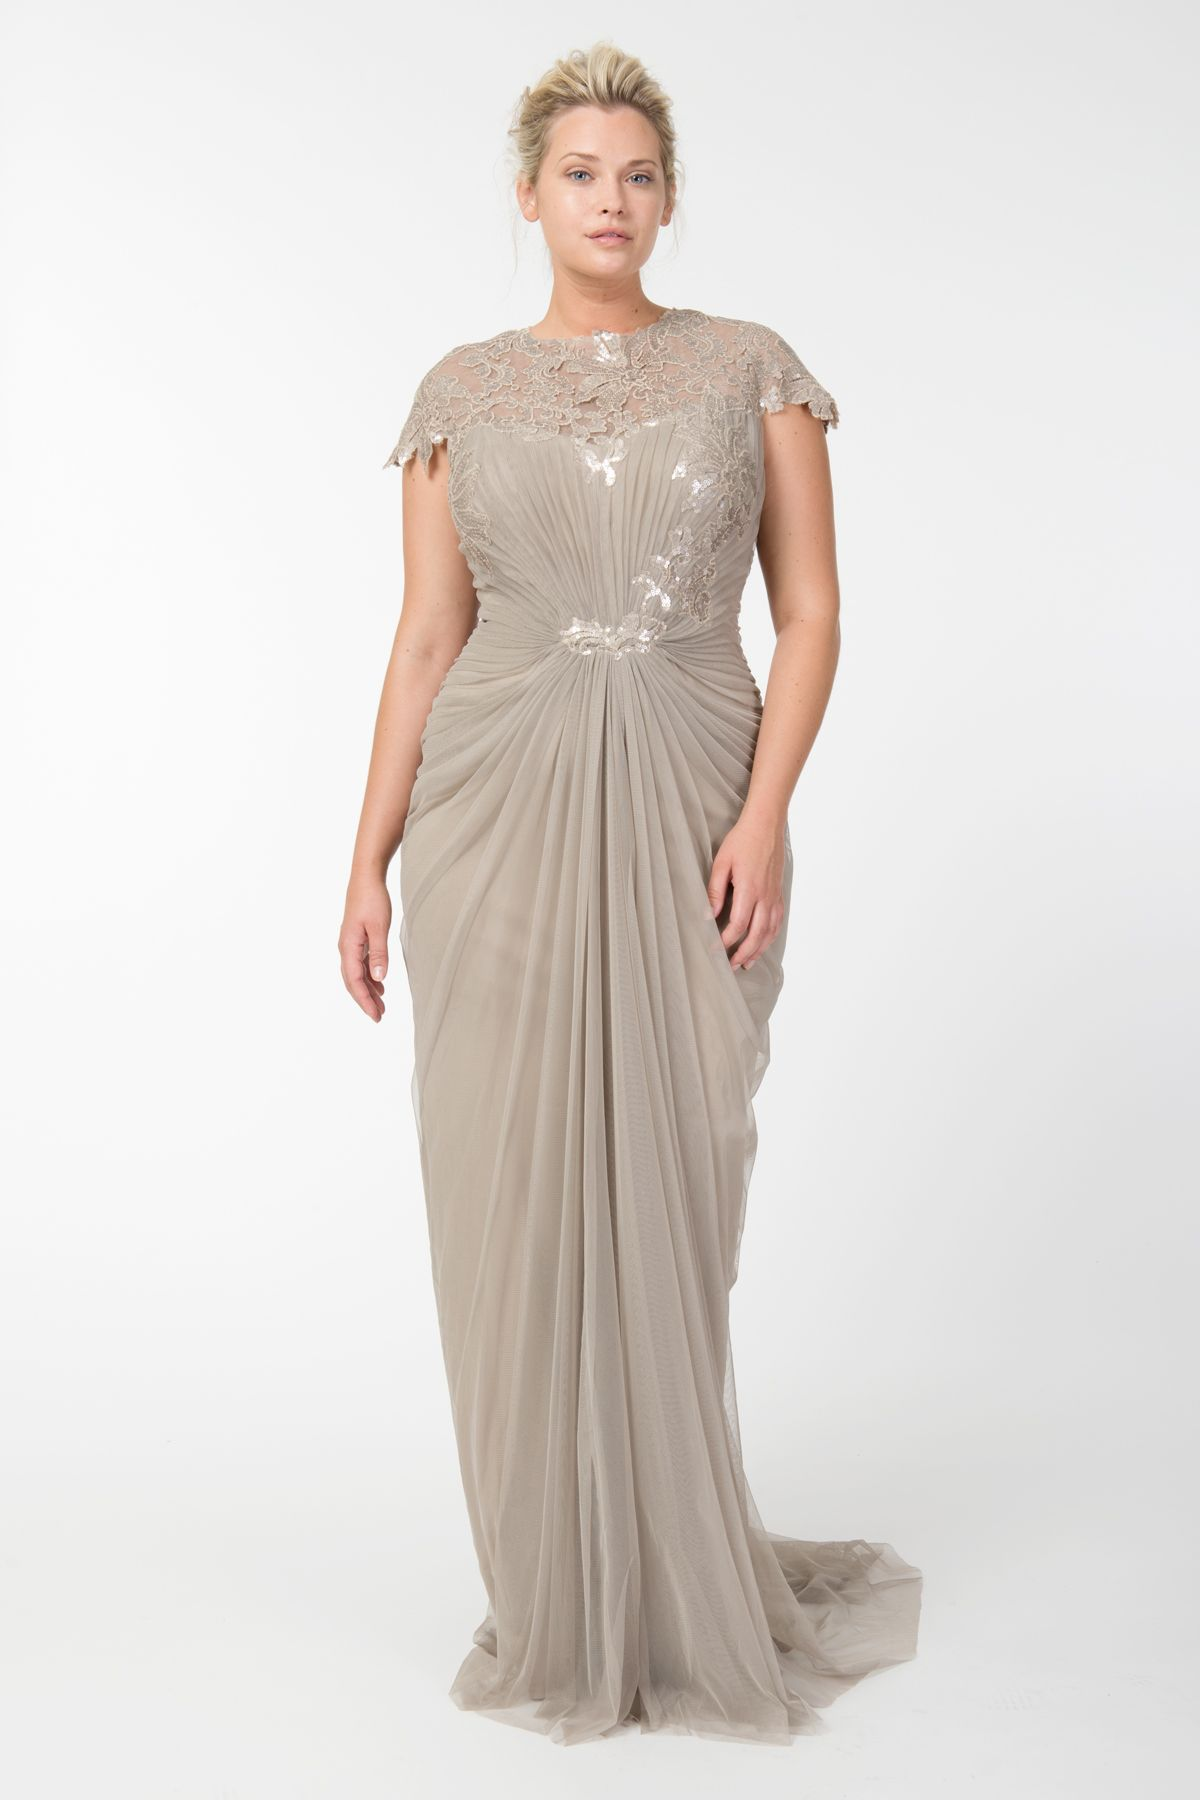 Tulle Draped Cap Sleeve Gown with Paillette Detail in Sand | Tadashi ...